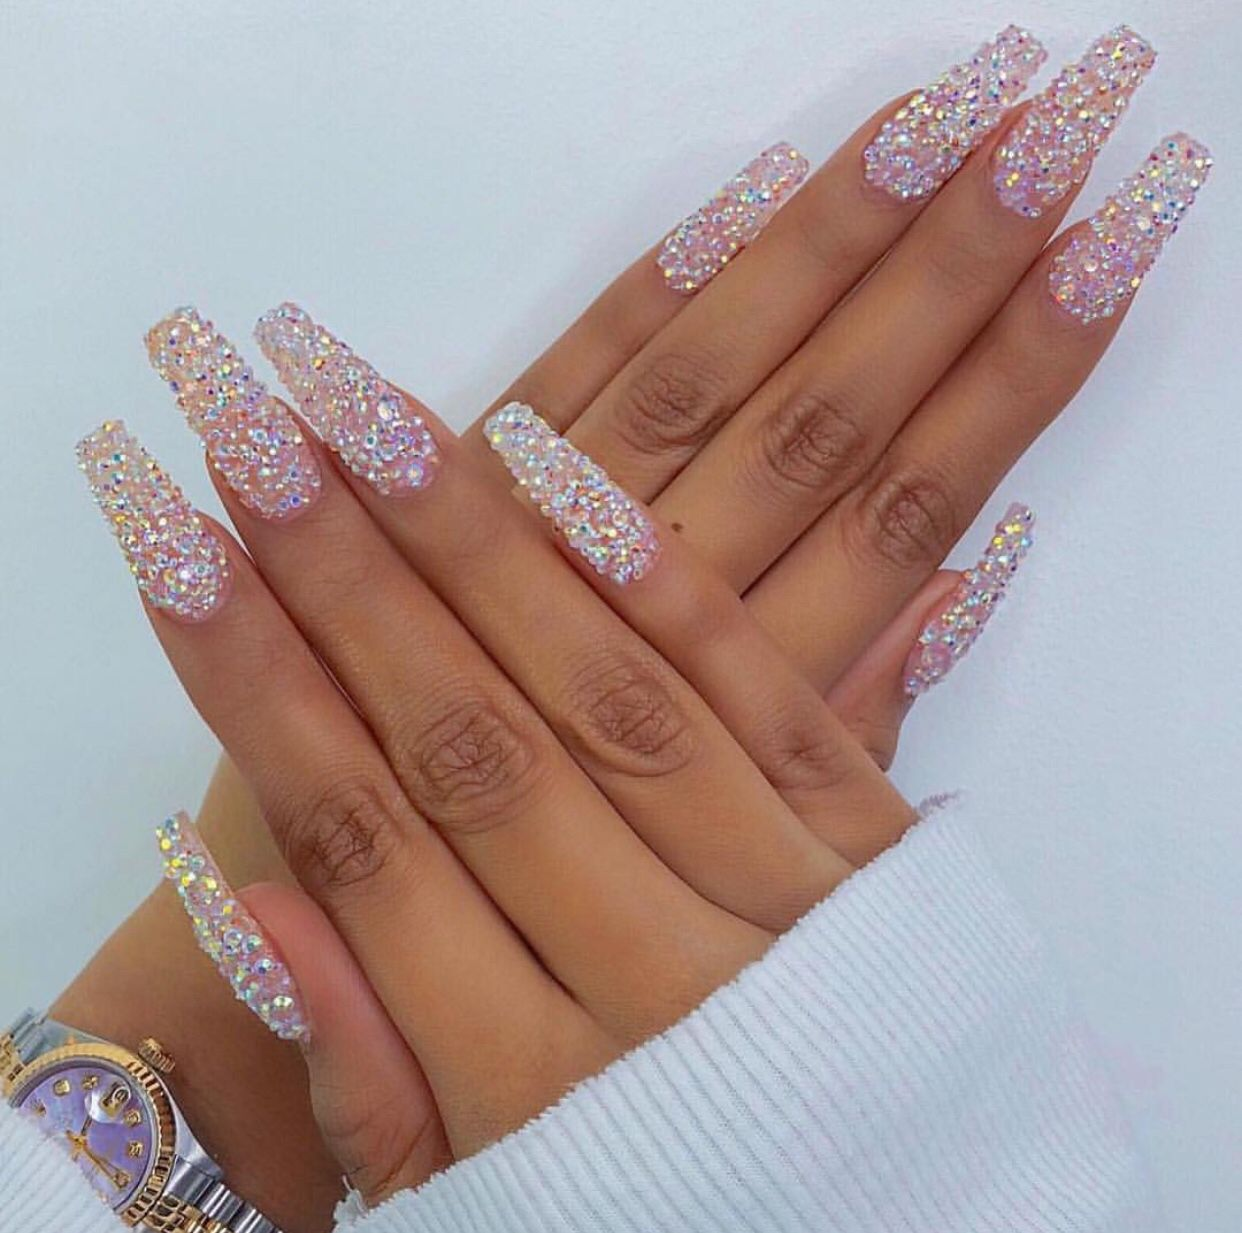 medium Coffin nails pixie crystal bling